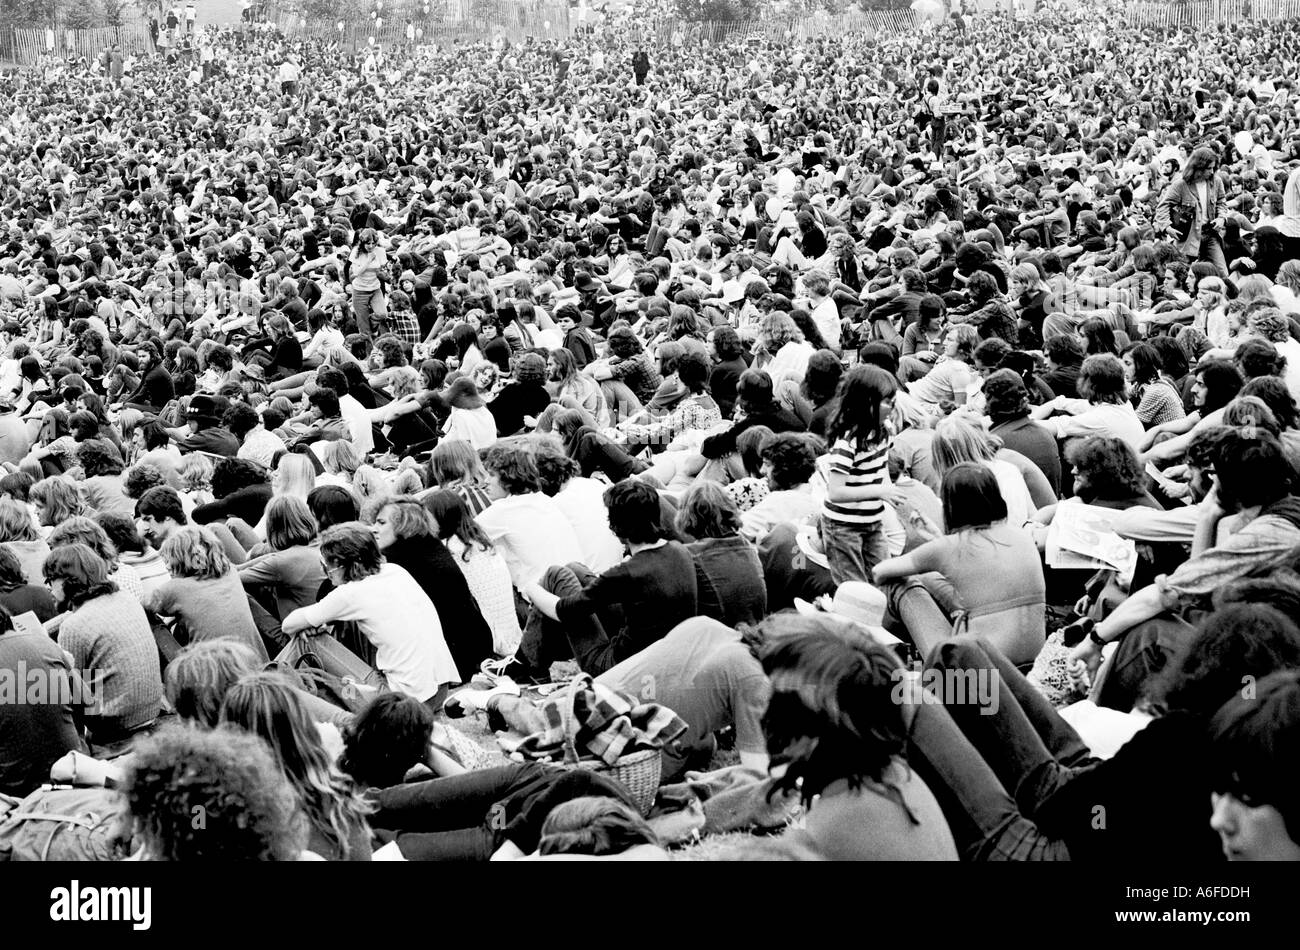 Music concert at the Crystal Palace Concert Bowl, London  in 1970. - Stock Image